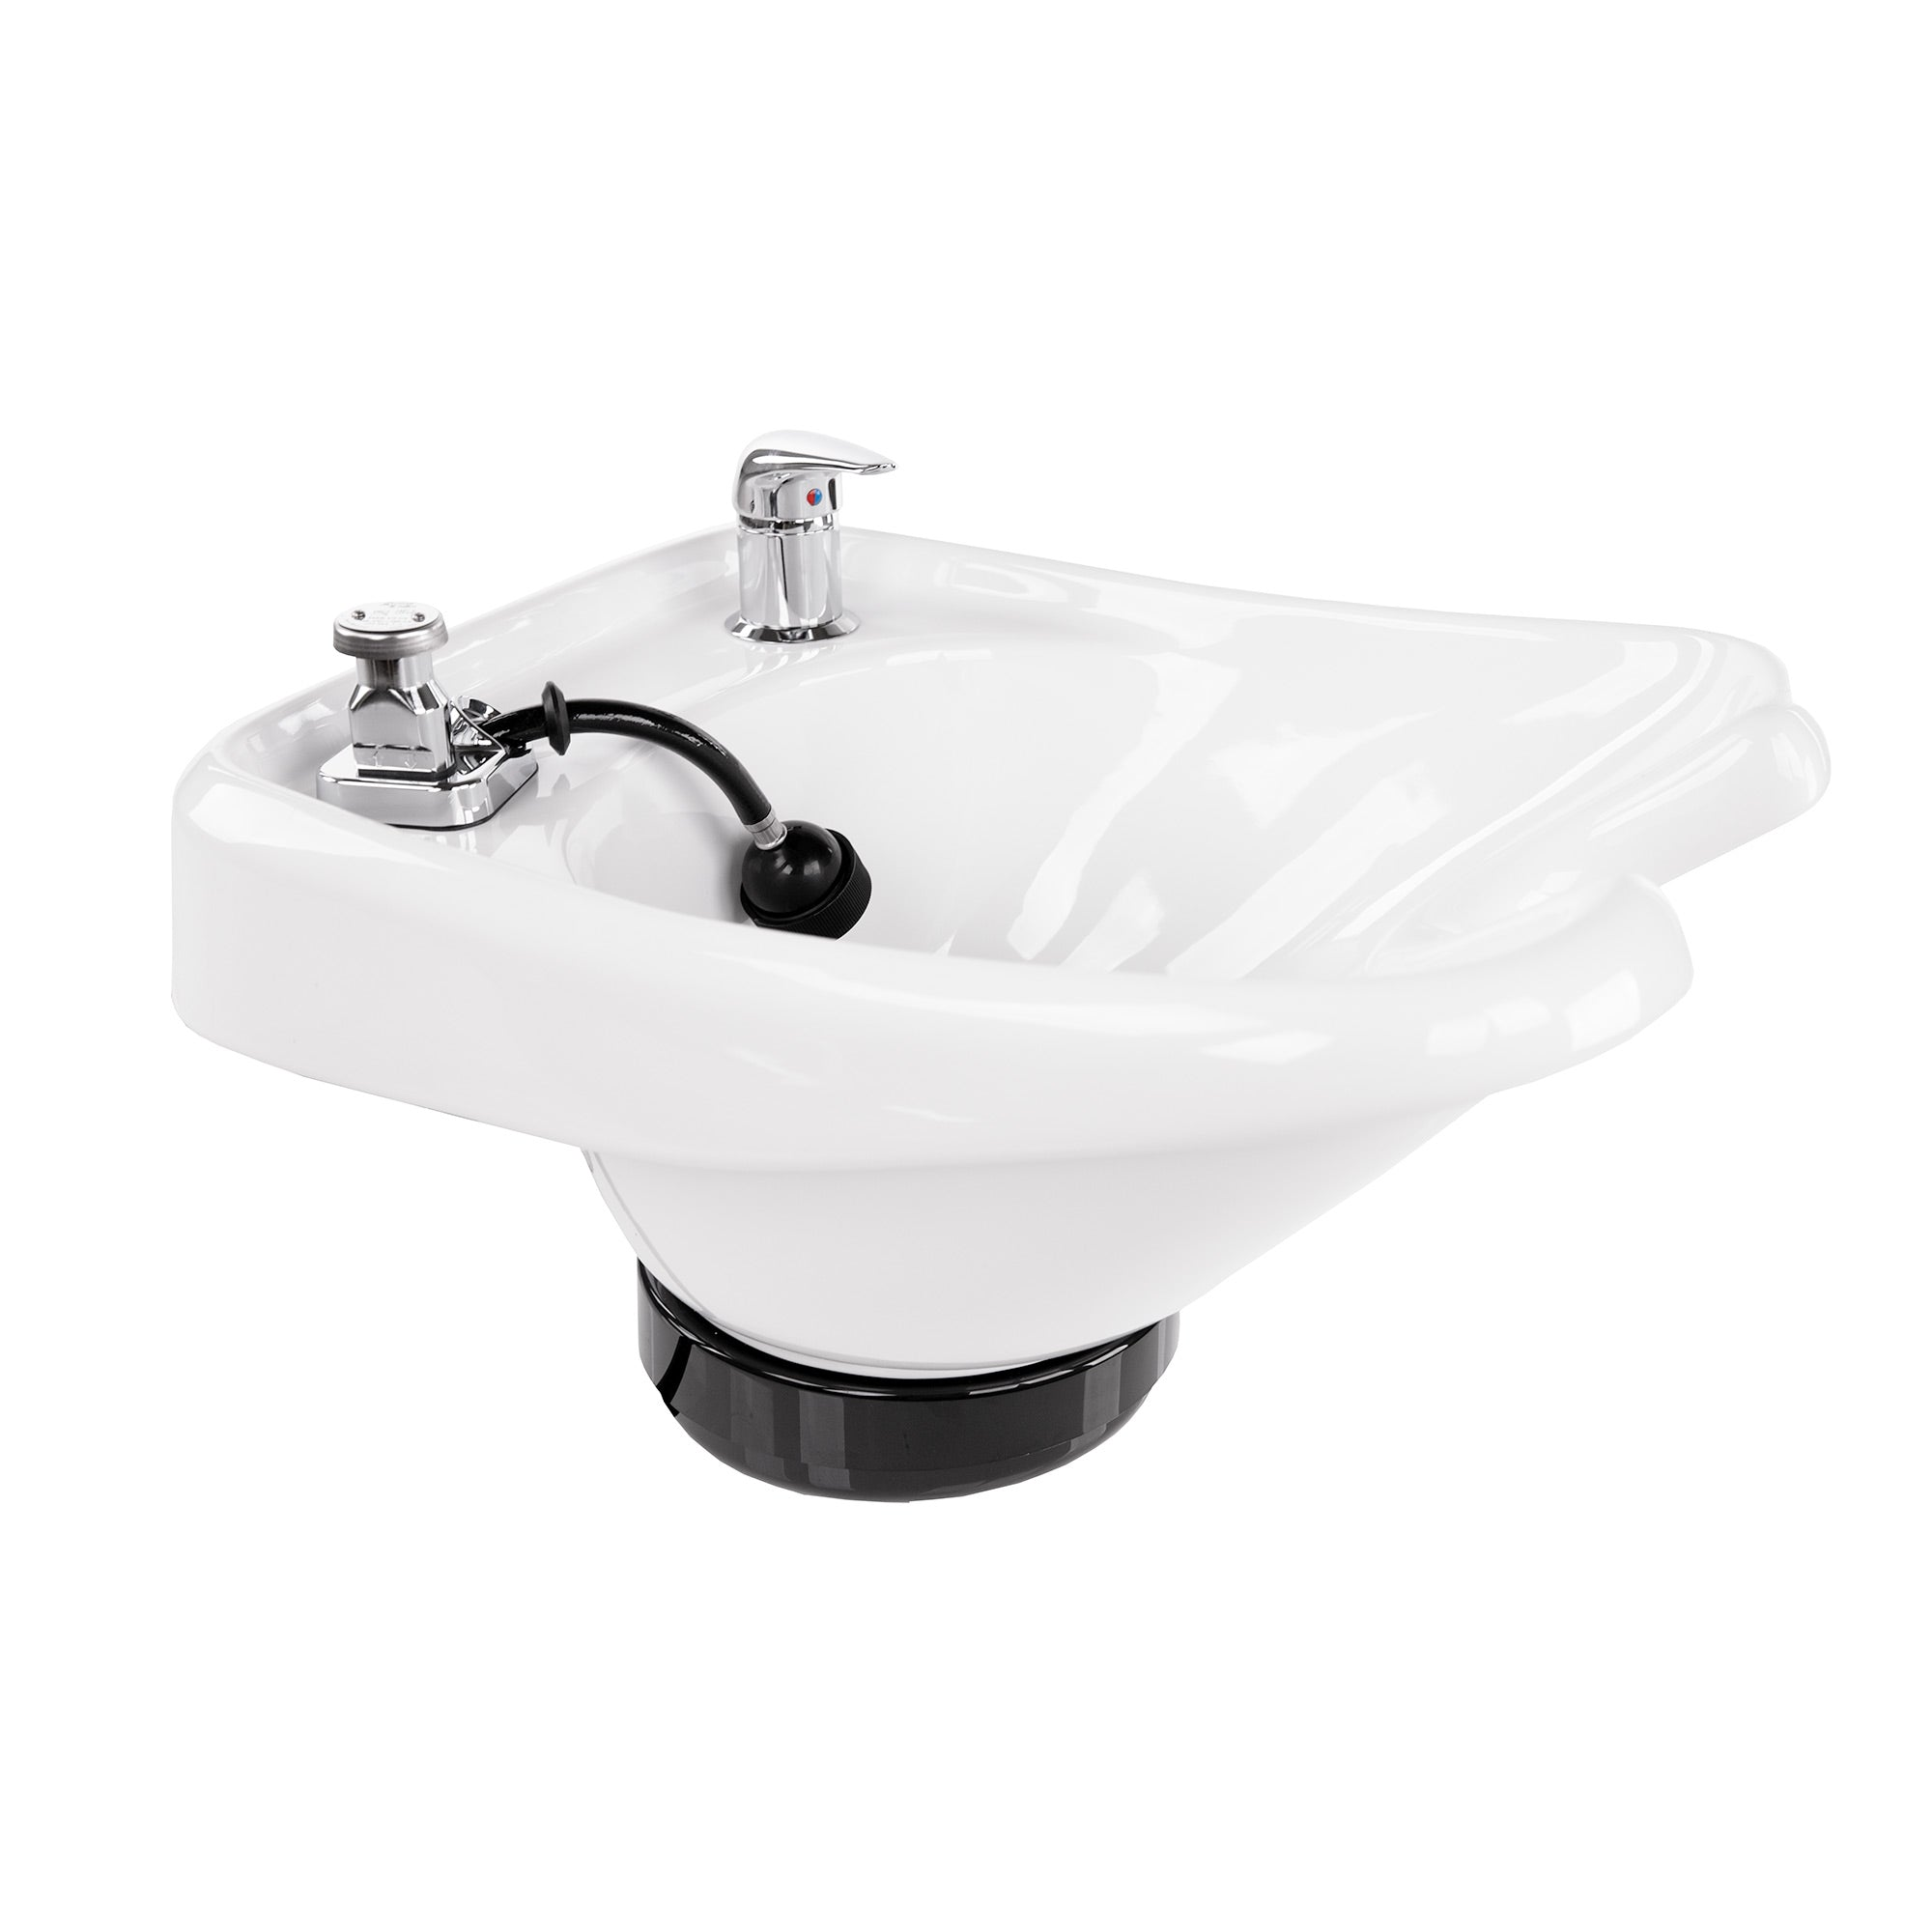 Porcelain Tilting Shampoo Bowl - Collins - Salon Equipment and Barber Equipment